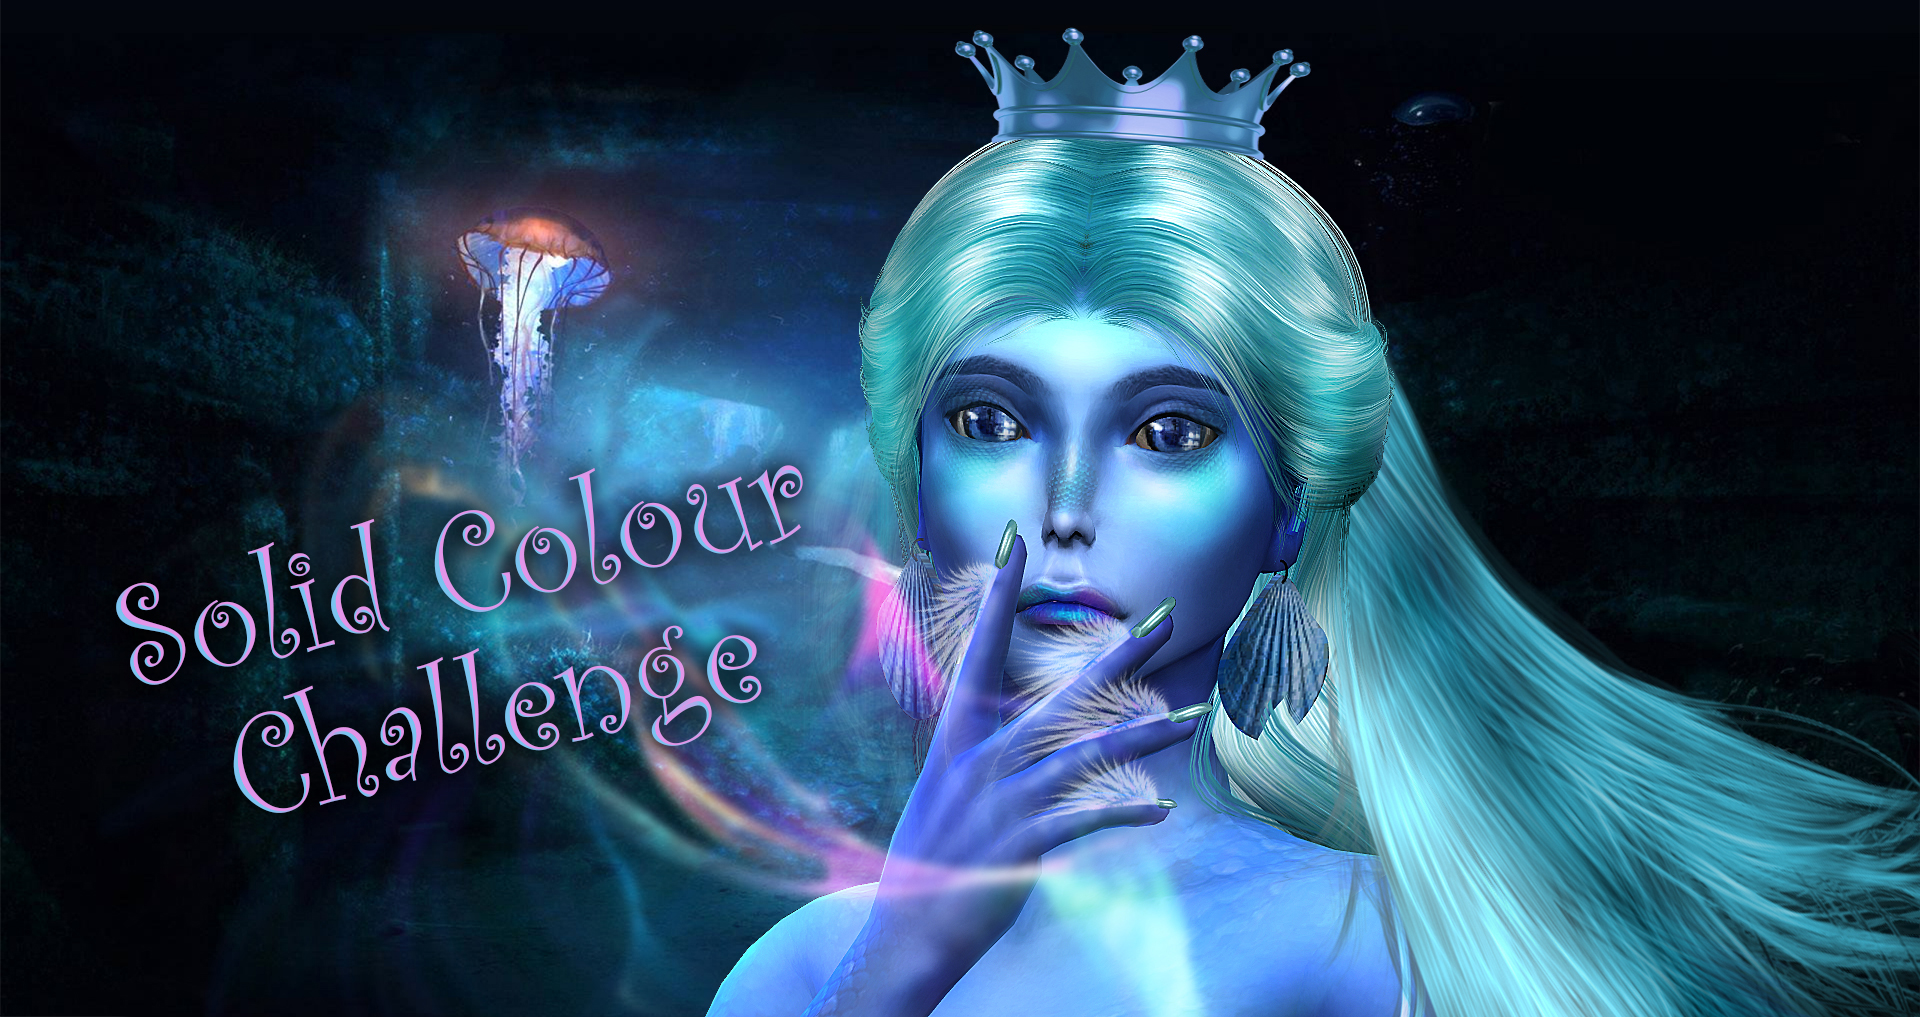 The Sims 4: Solid Colour Challenge (сим одного цвета)